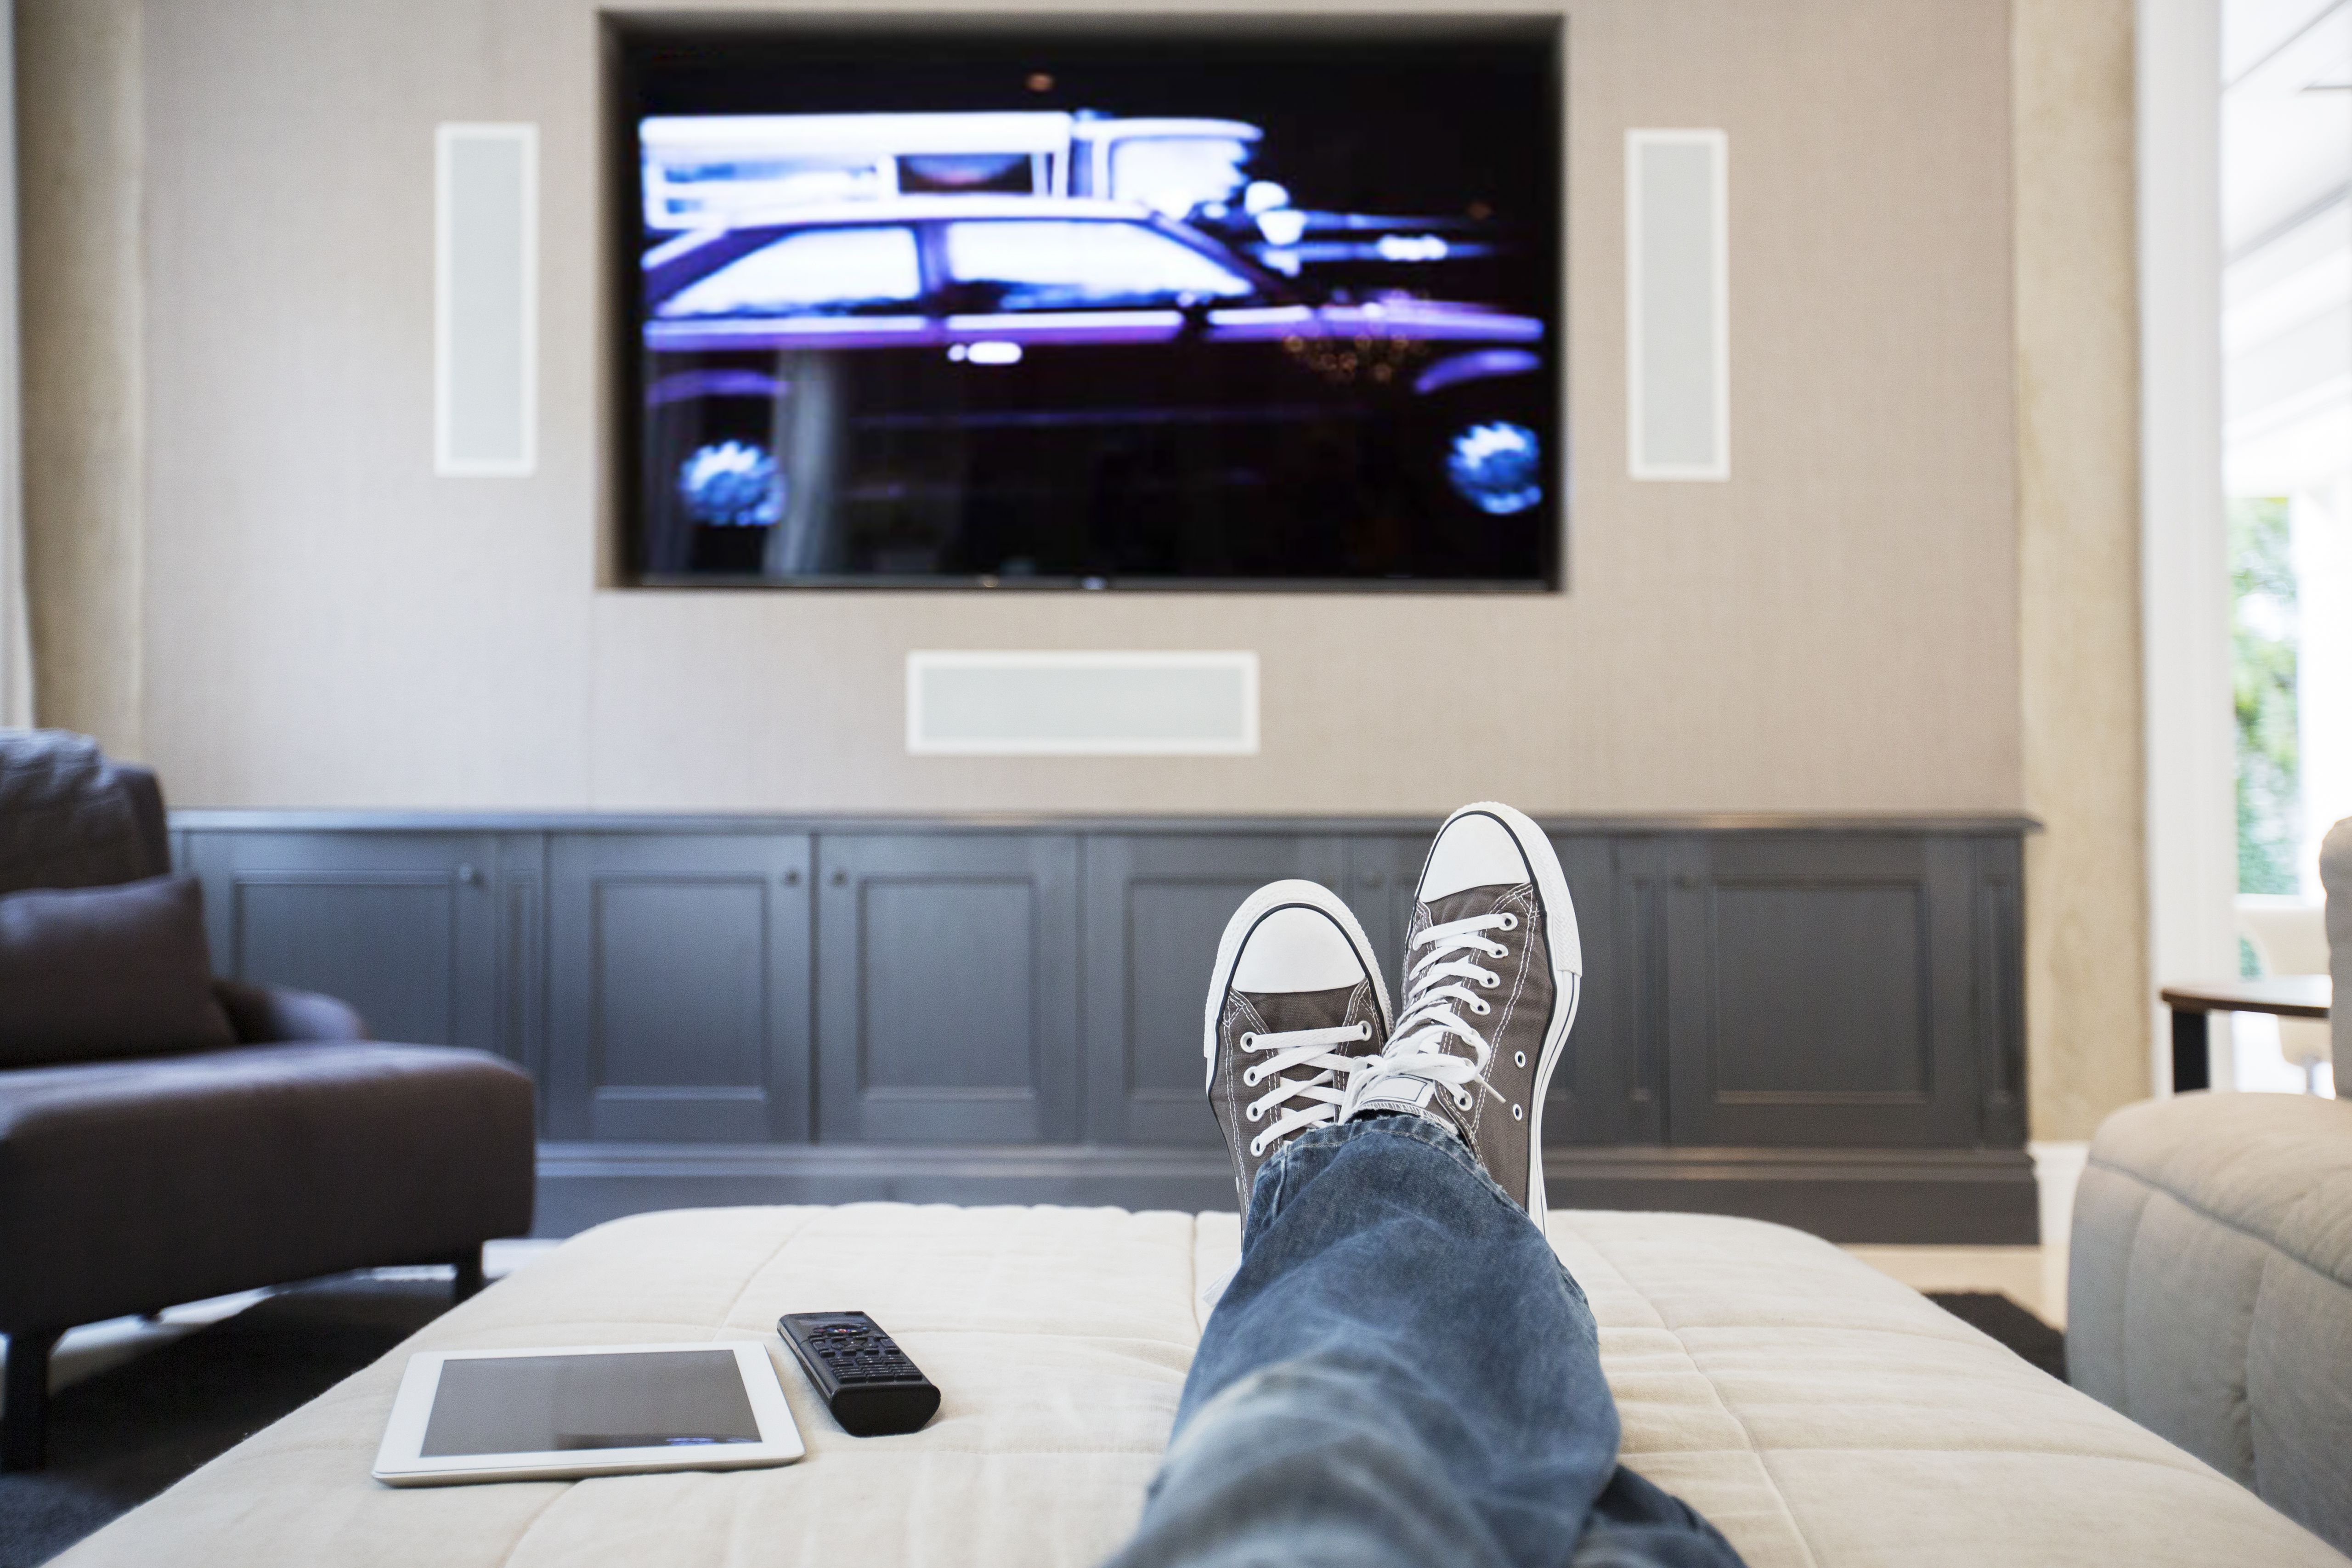 What Is The Best Viewing Distance To Watch A Tv From?